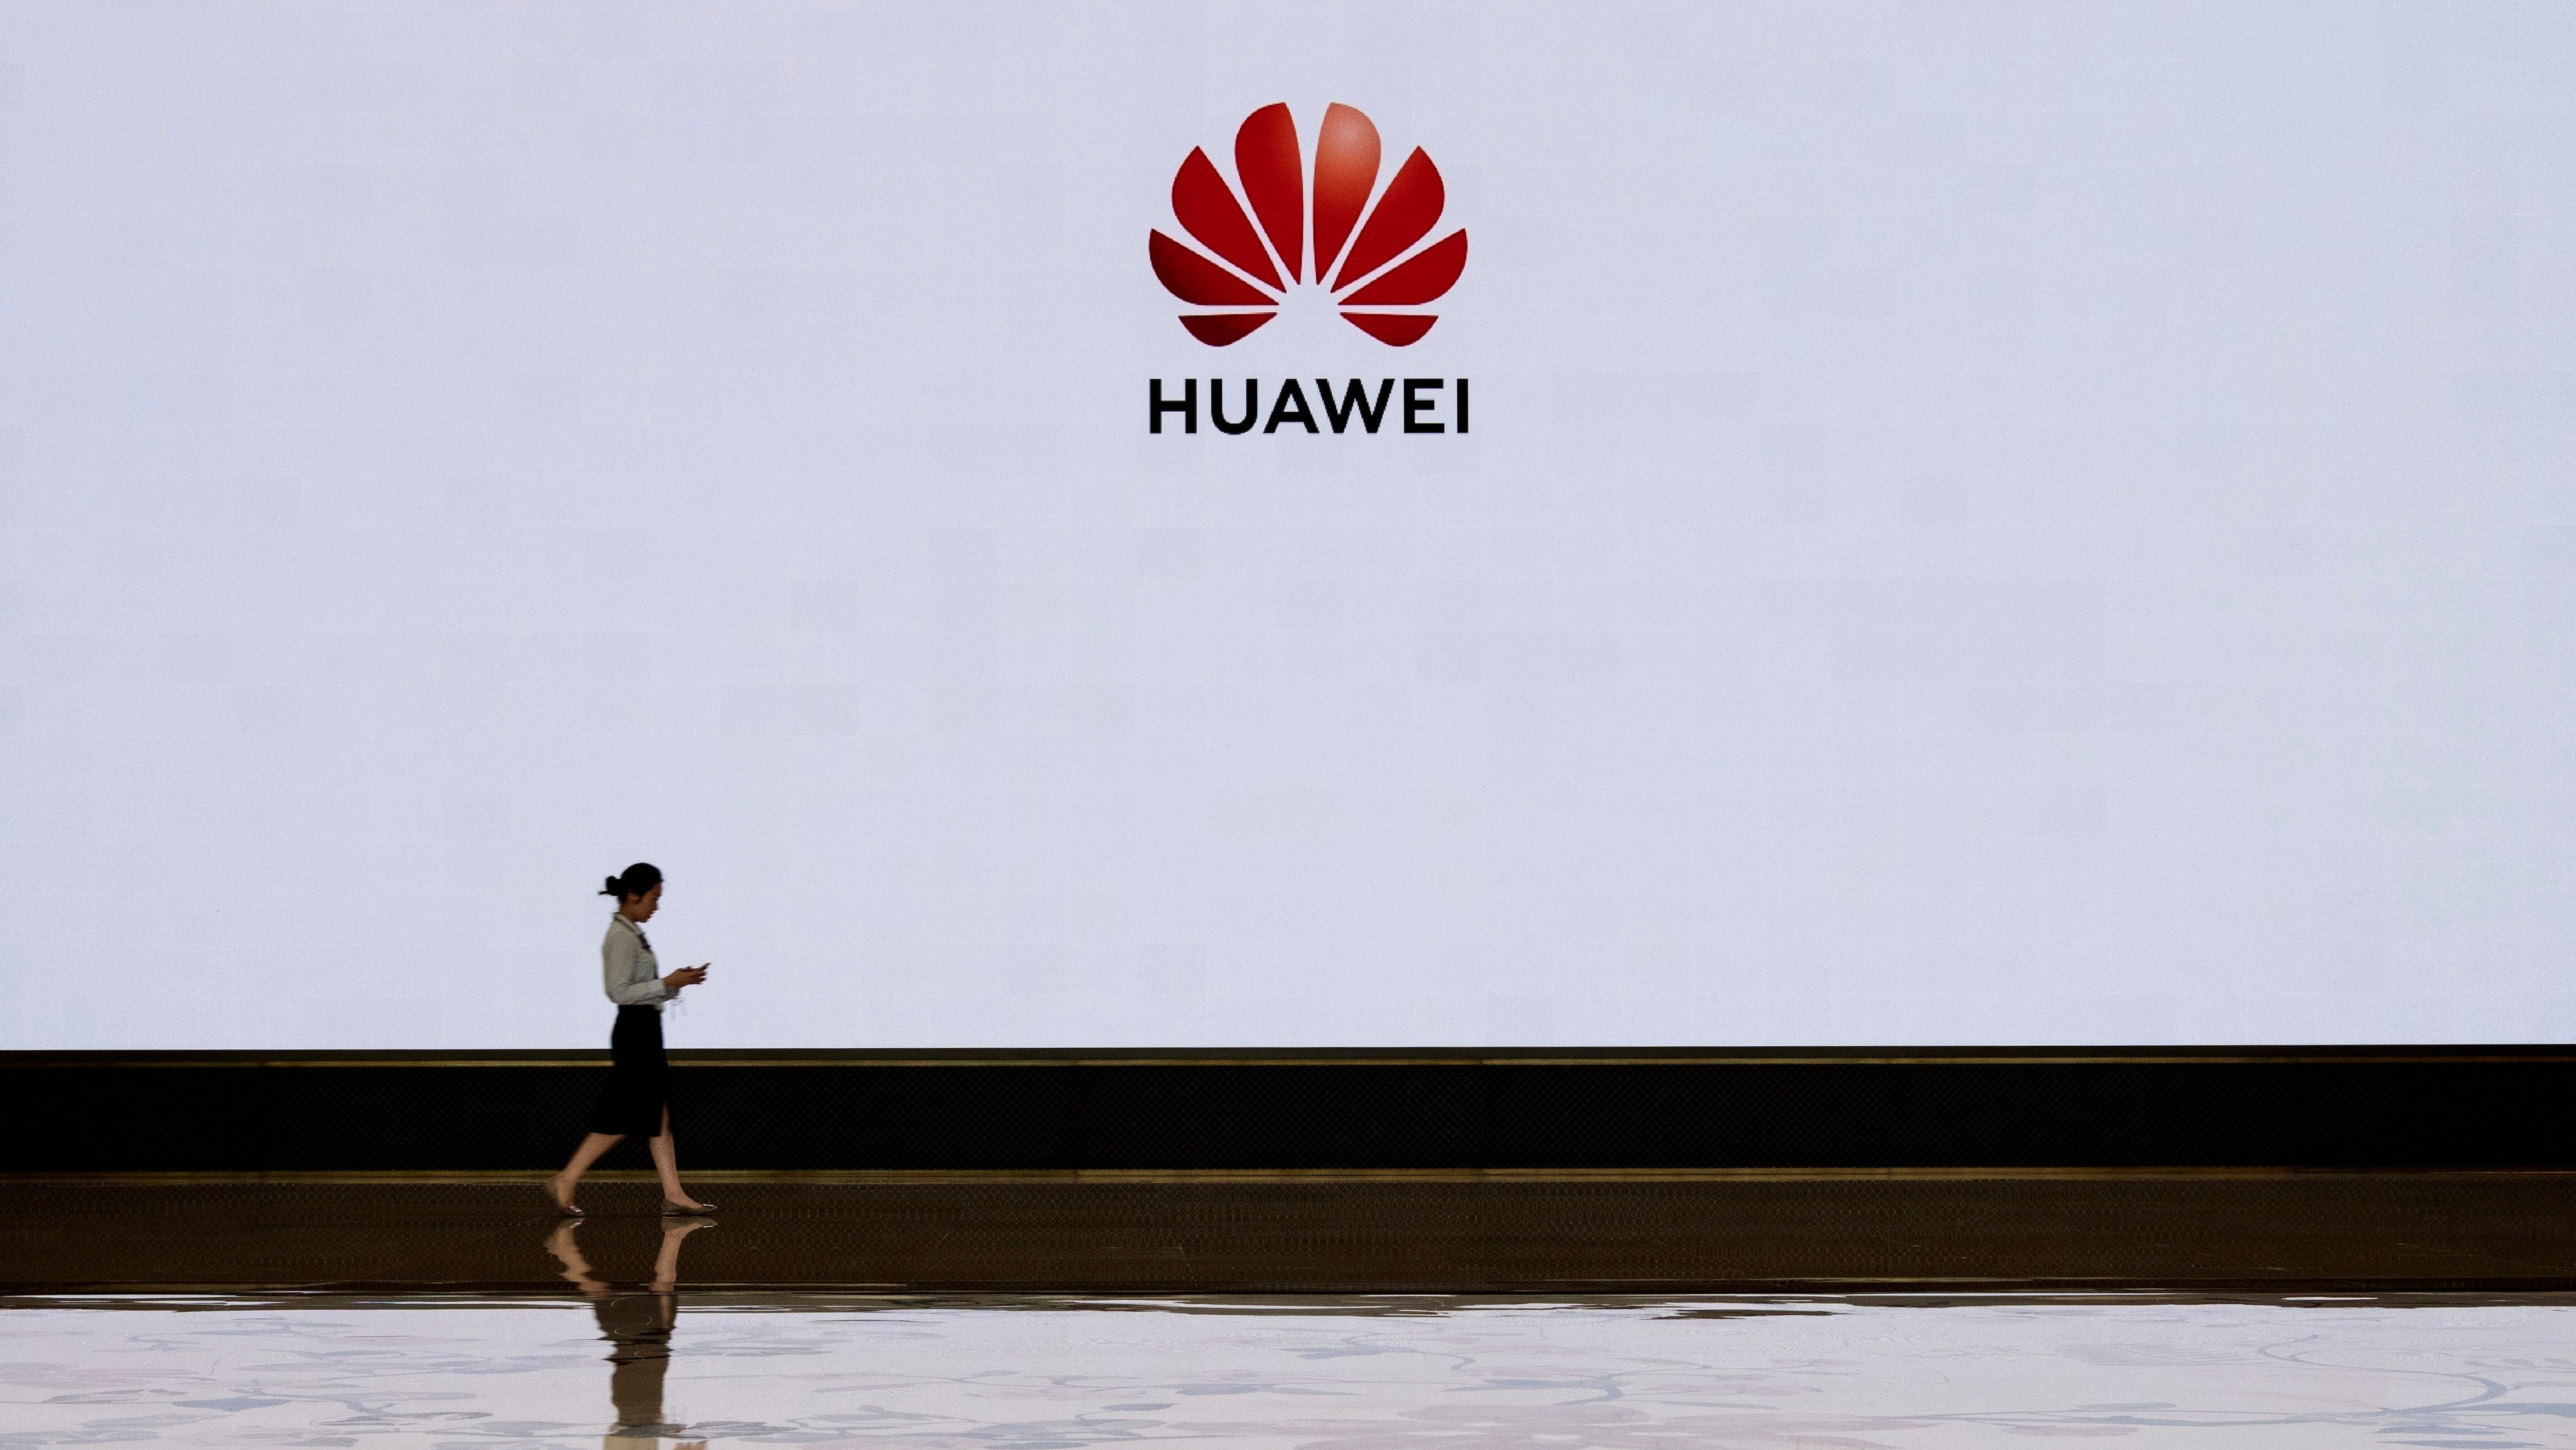 Wait, What The Hell Is Going On With Huawei Now?